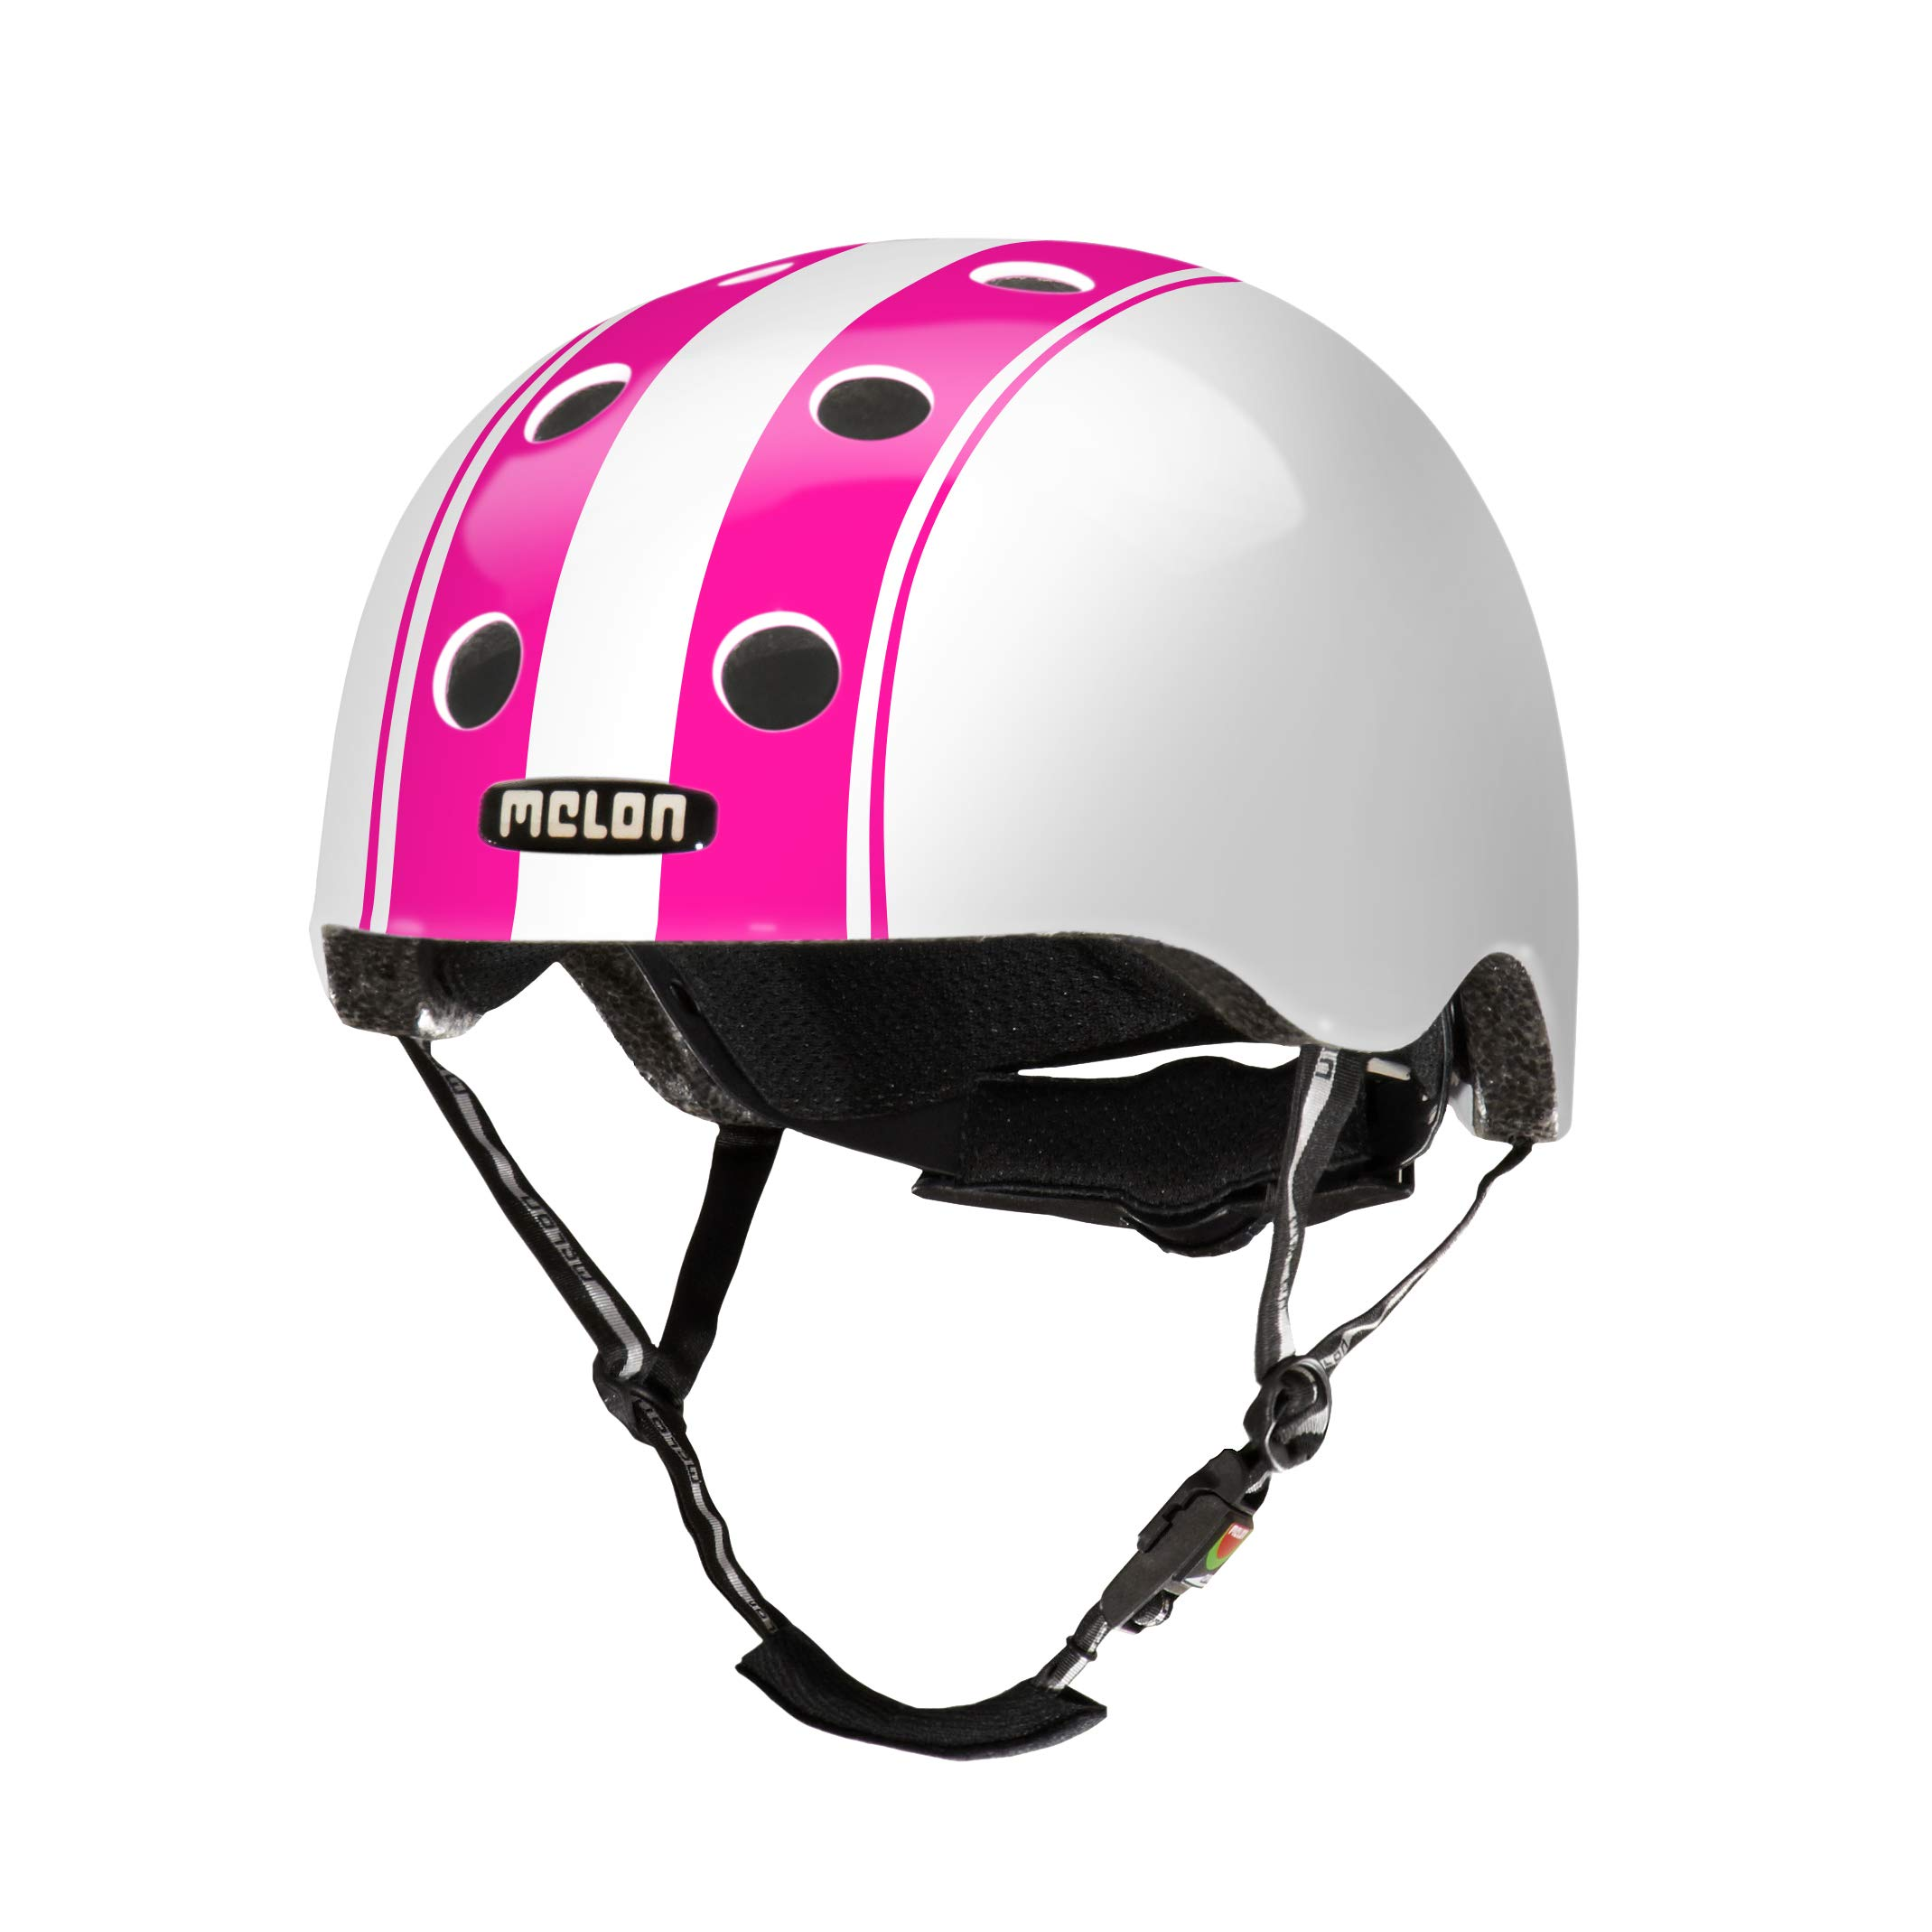 Melon Double Pink White Helmet, White/Pink, Glossy Finish, Large, 58 - 63cm / 22.75 - 25in Head Size